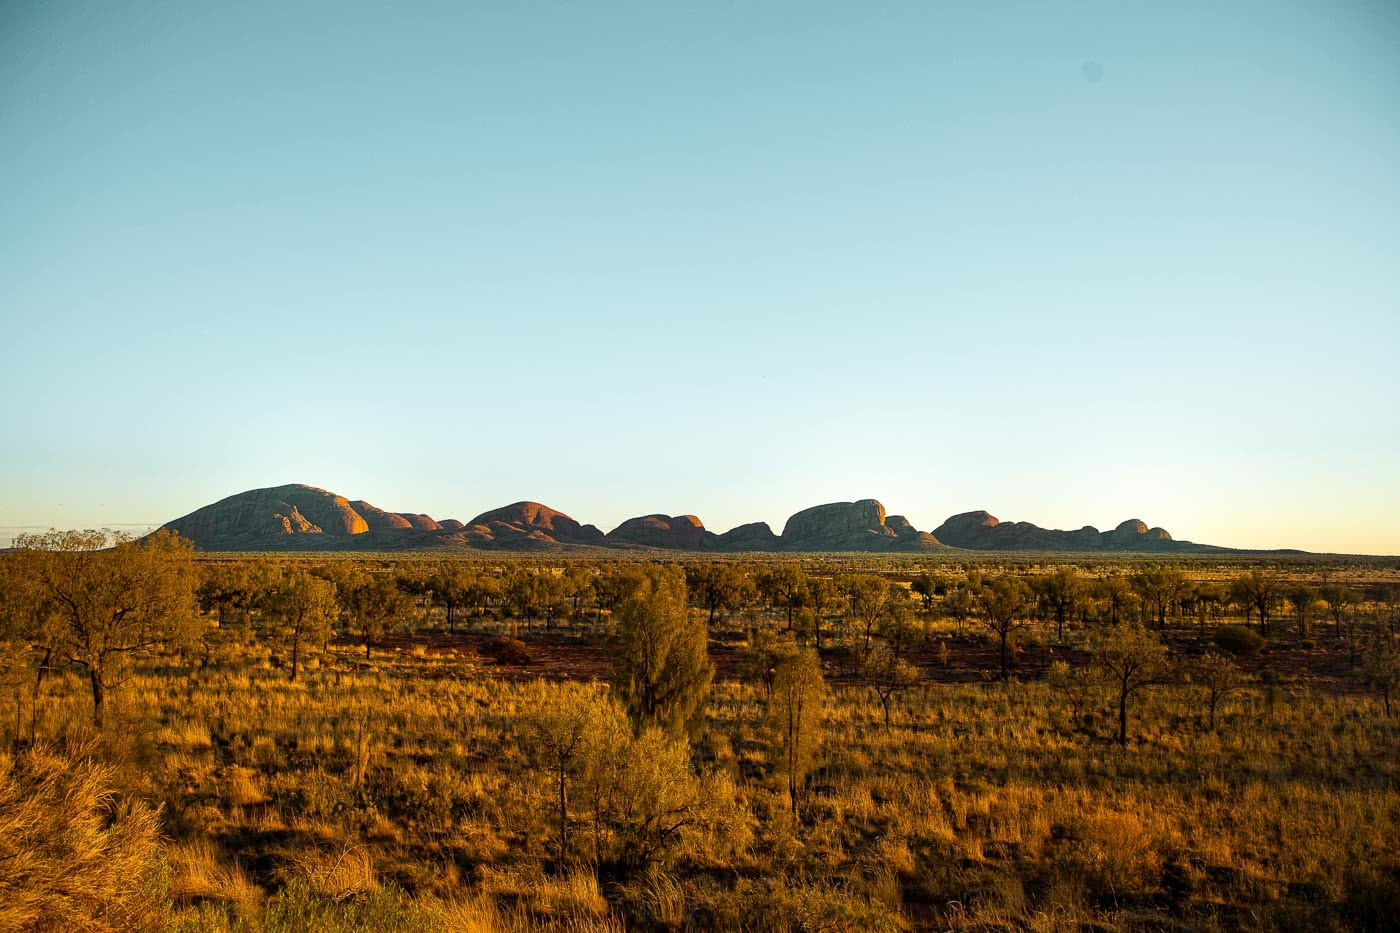 Dune Viewing Area, Kata Tjuta, Photo by Bee Stephens, Northern Territory